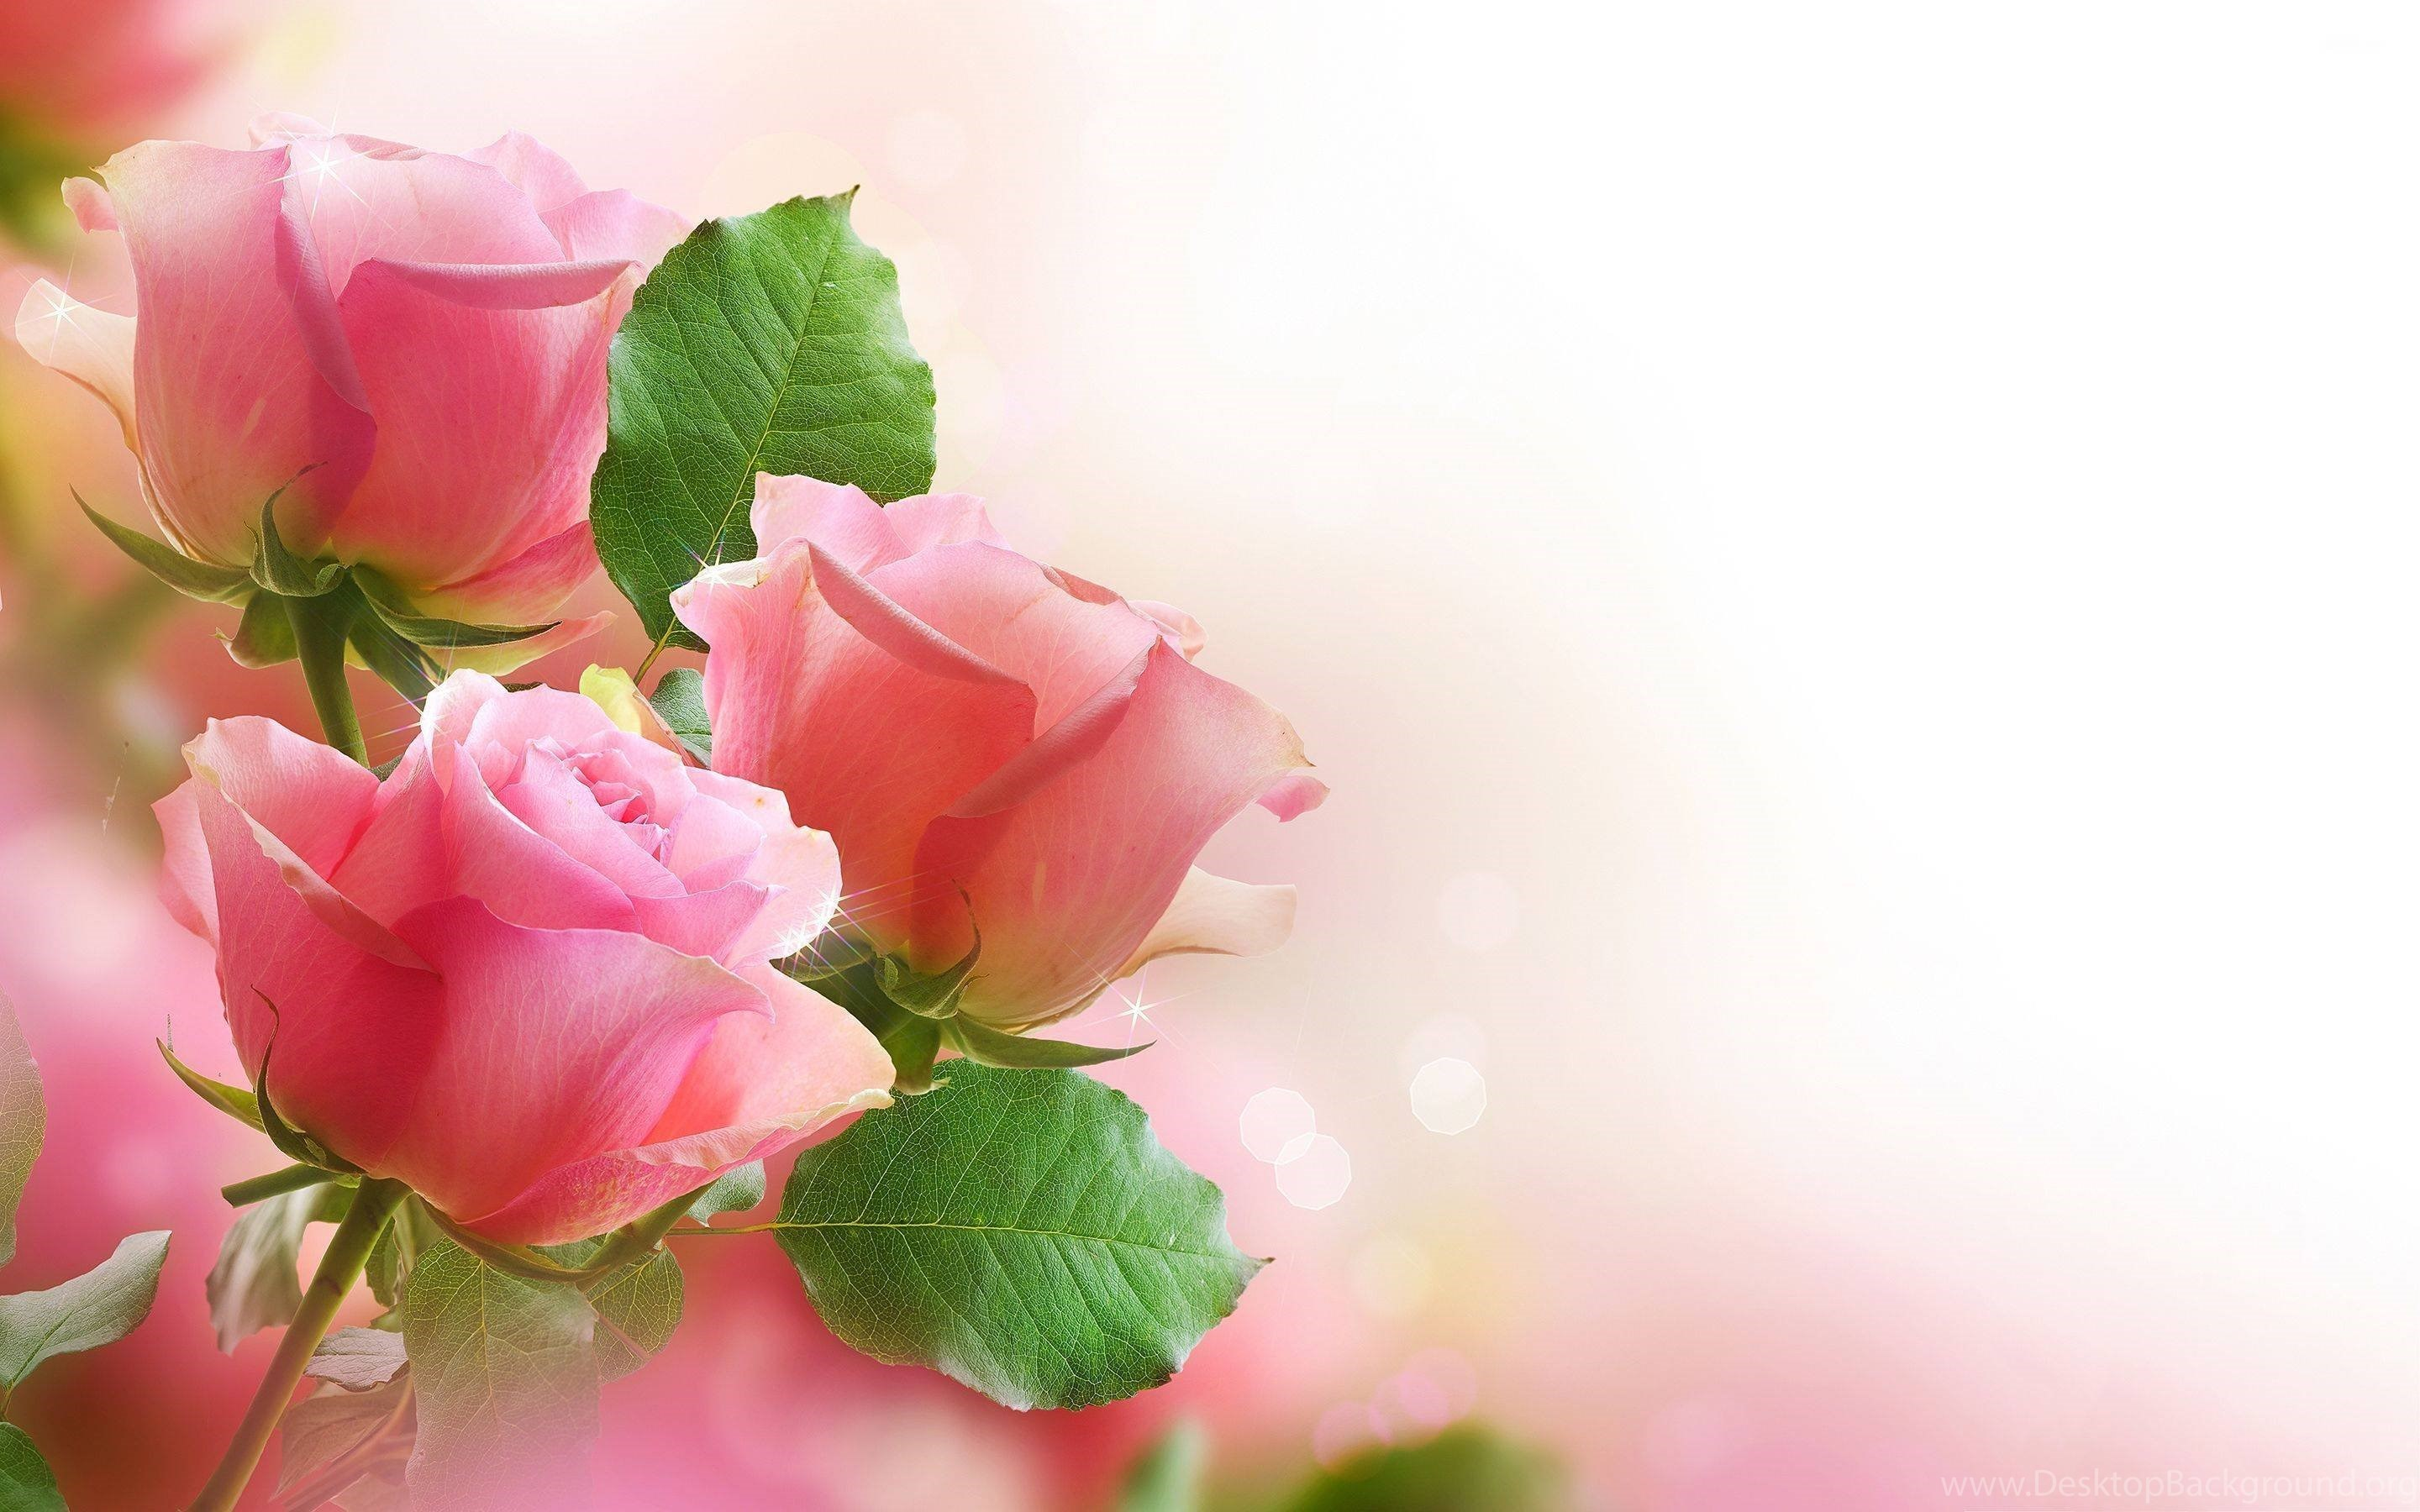 Hd Pink Rose Flowers Wallpapers Hd Hirewallpapers 528 Desktop Background